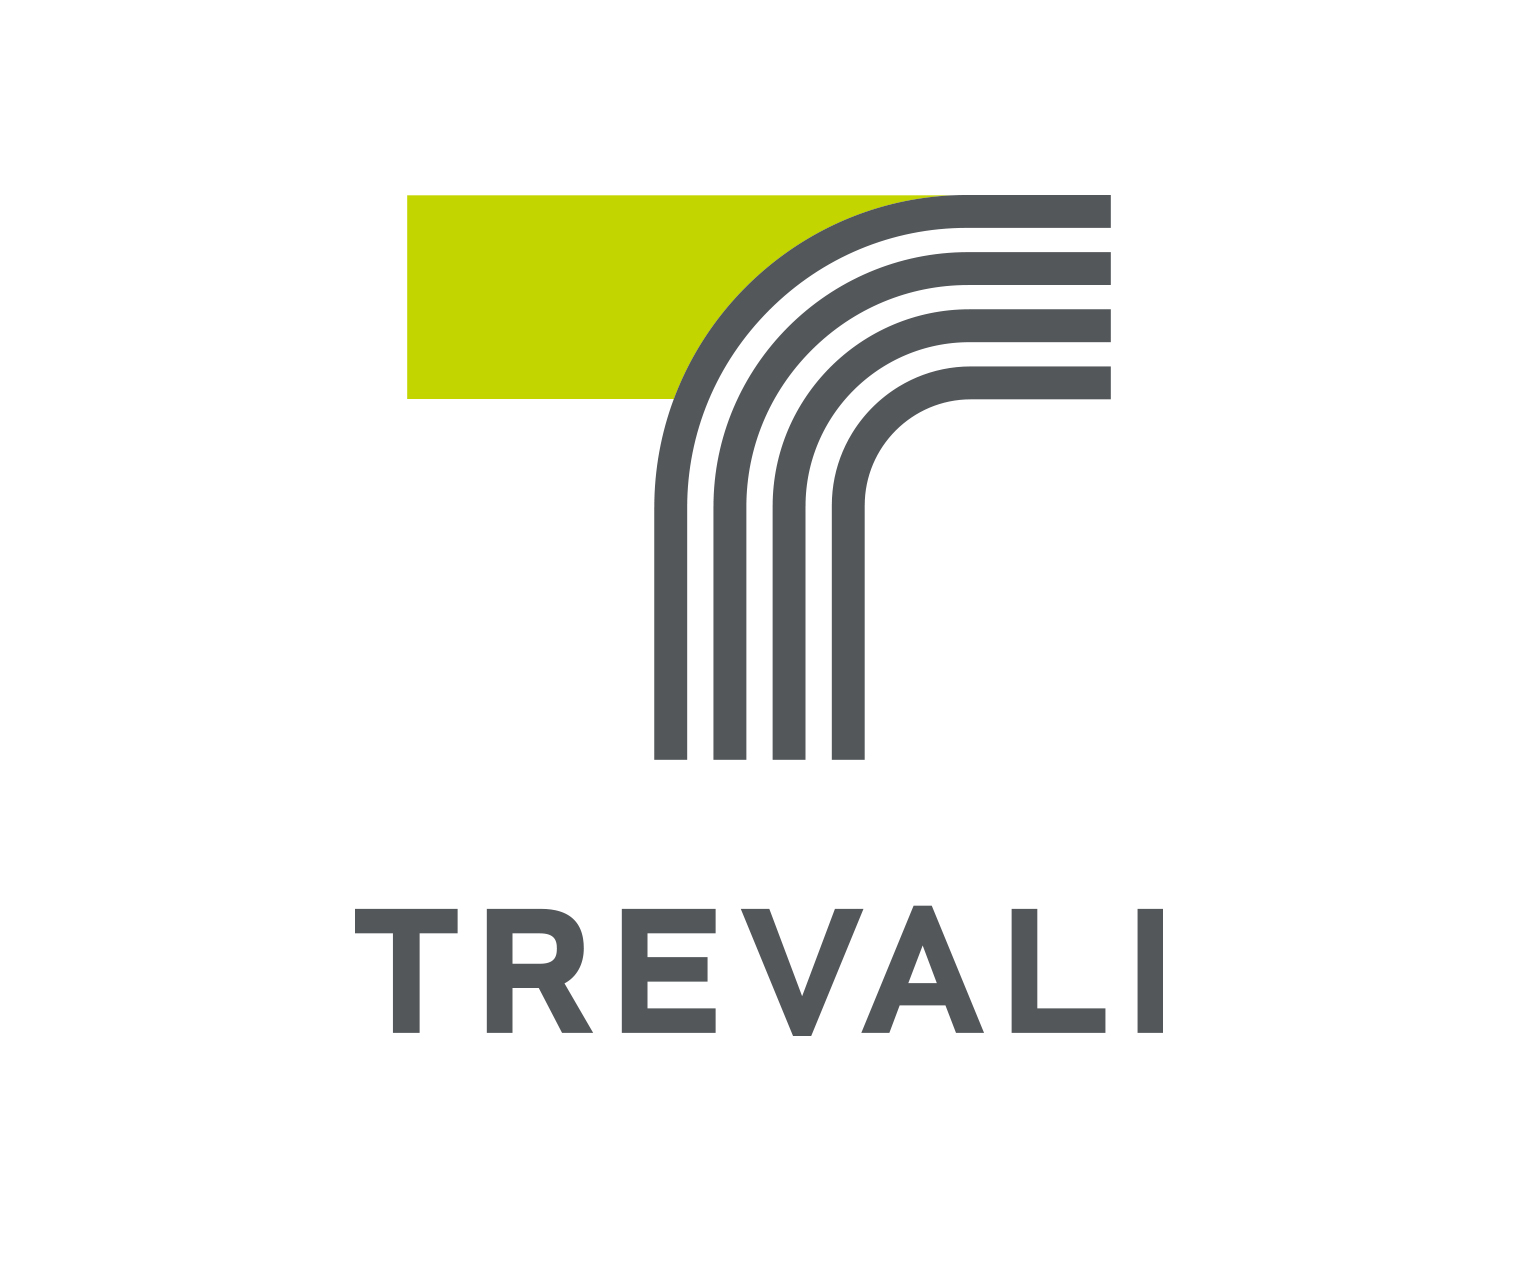 Trevali Announces Drill Results For the Newly Discovered T3 Horizon at the Perkoa Mine and Updates on Regional Exploration and the Hanging Wall Lens Infill Programs